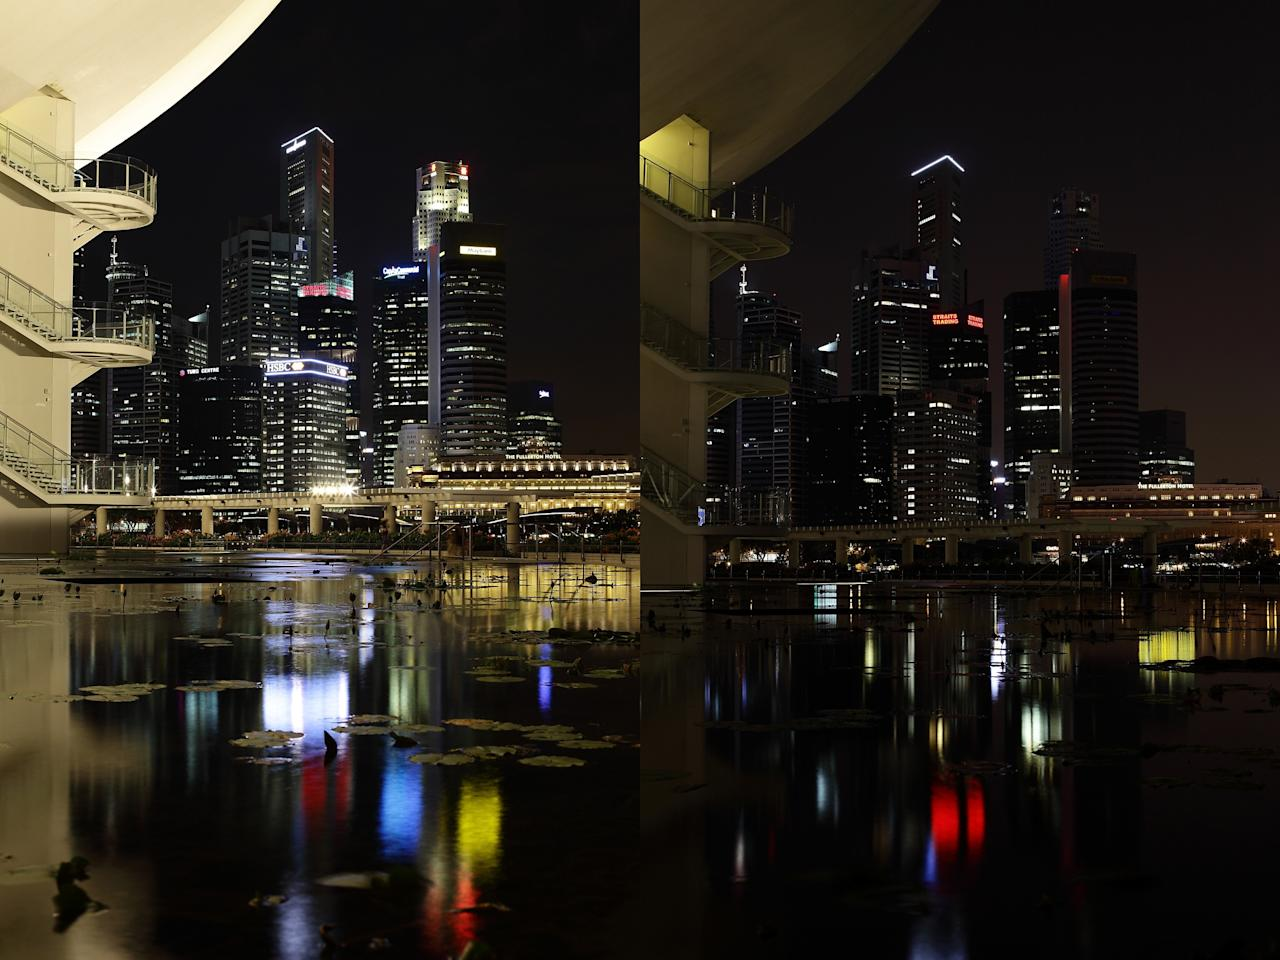 SINGAPORE - MARCH 23: (EDITORS NOTE: Image is a digital composite.)  The Arts and Science Museum and the Singapore city skyline is seen before (left) and after the lights were switched off to recognize Earth Hour on March 23, 2013 in Singapore, Singapore. Businesses and households around the world switch their lights off for an hour at 20:30 local time on March 23, to celebrate Earth Hour and raise awareness about climate change and renewable energy. Earth hour began in Australia in 2007 and is now celebrated in over 150 countries around the world.  (Photo by Suhaimi Abdullah/Getty Images)